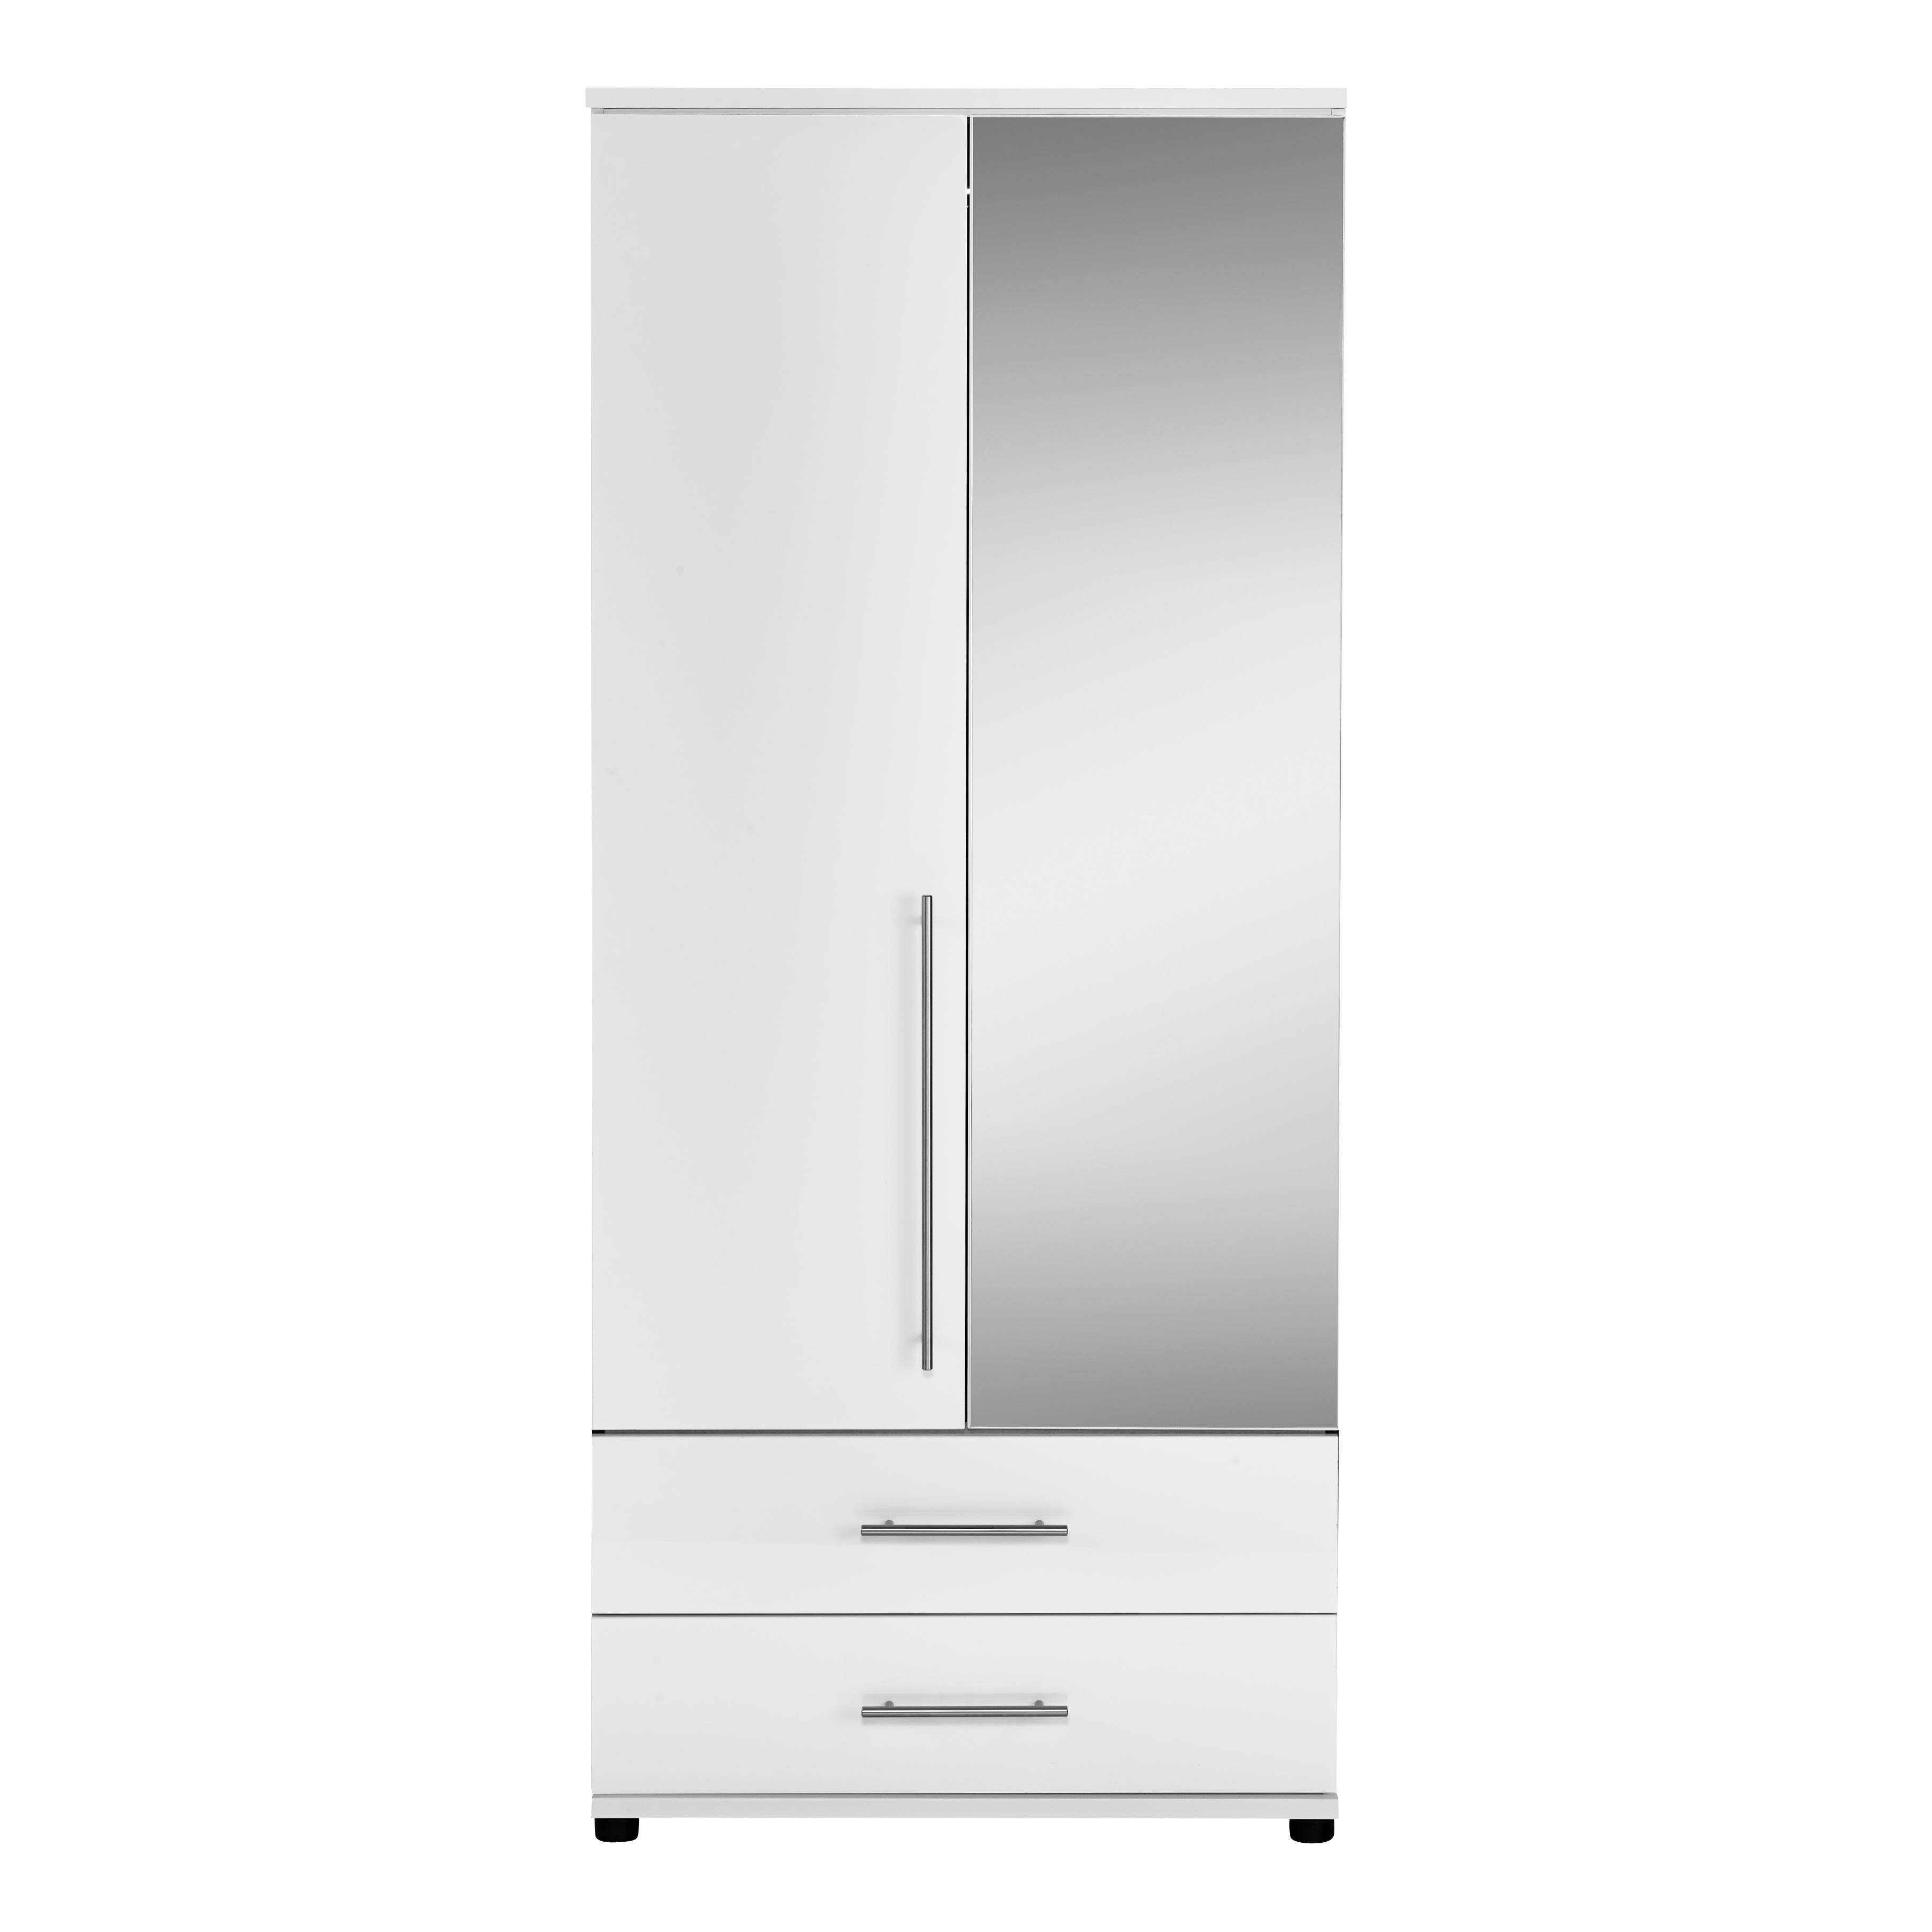 Gloss 2 Door 2 Drawer Mirrored Wardrobe | Contemporary Bedroom inside White 2 Door Wardrobes With Drawers (Image 5 of 15)